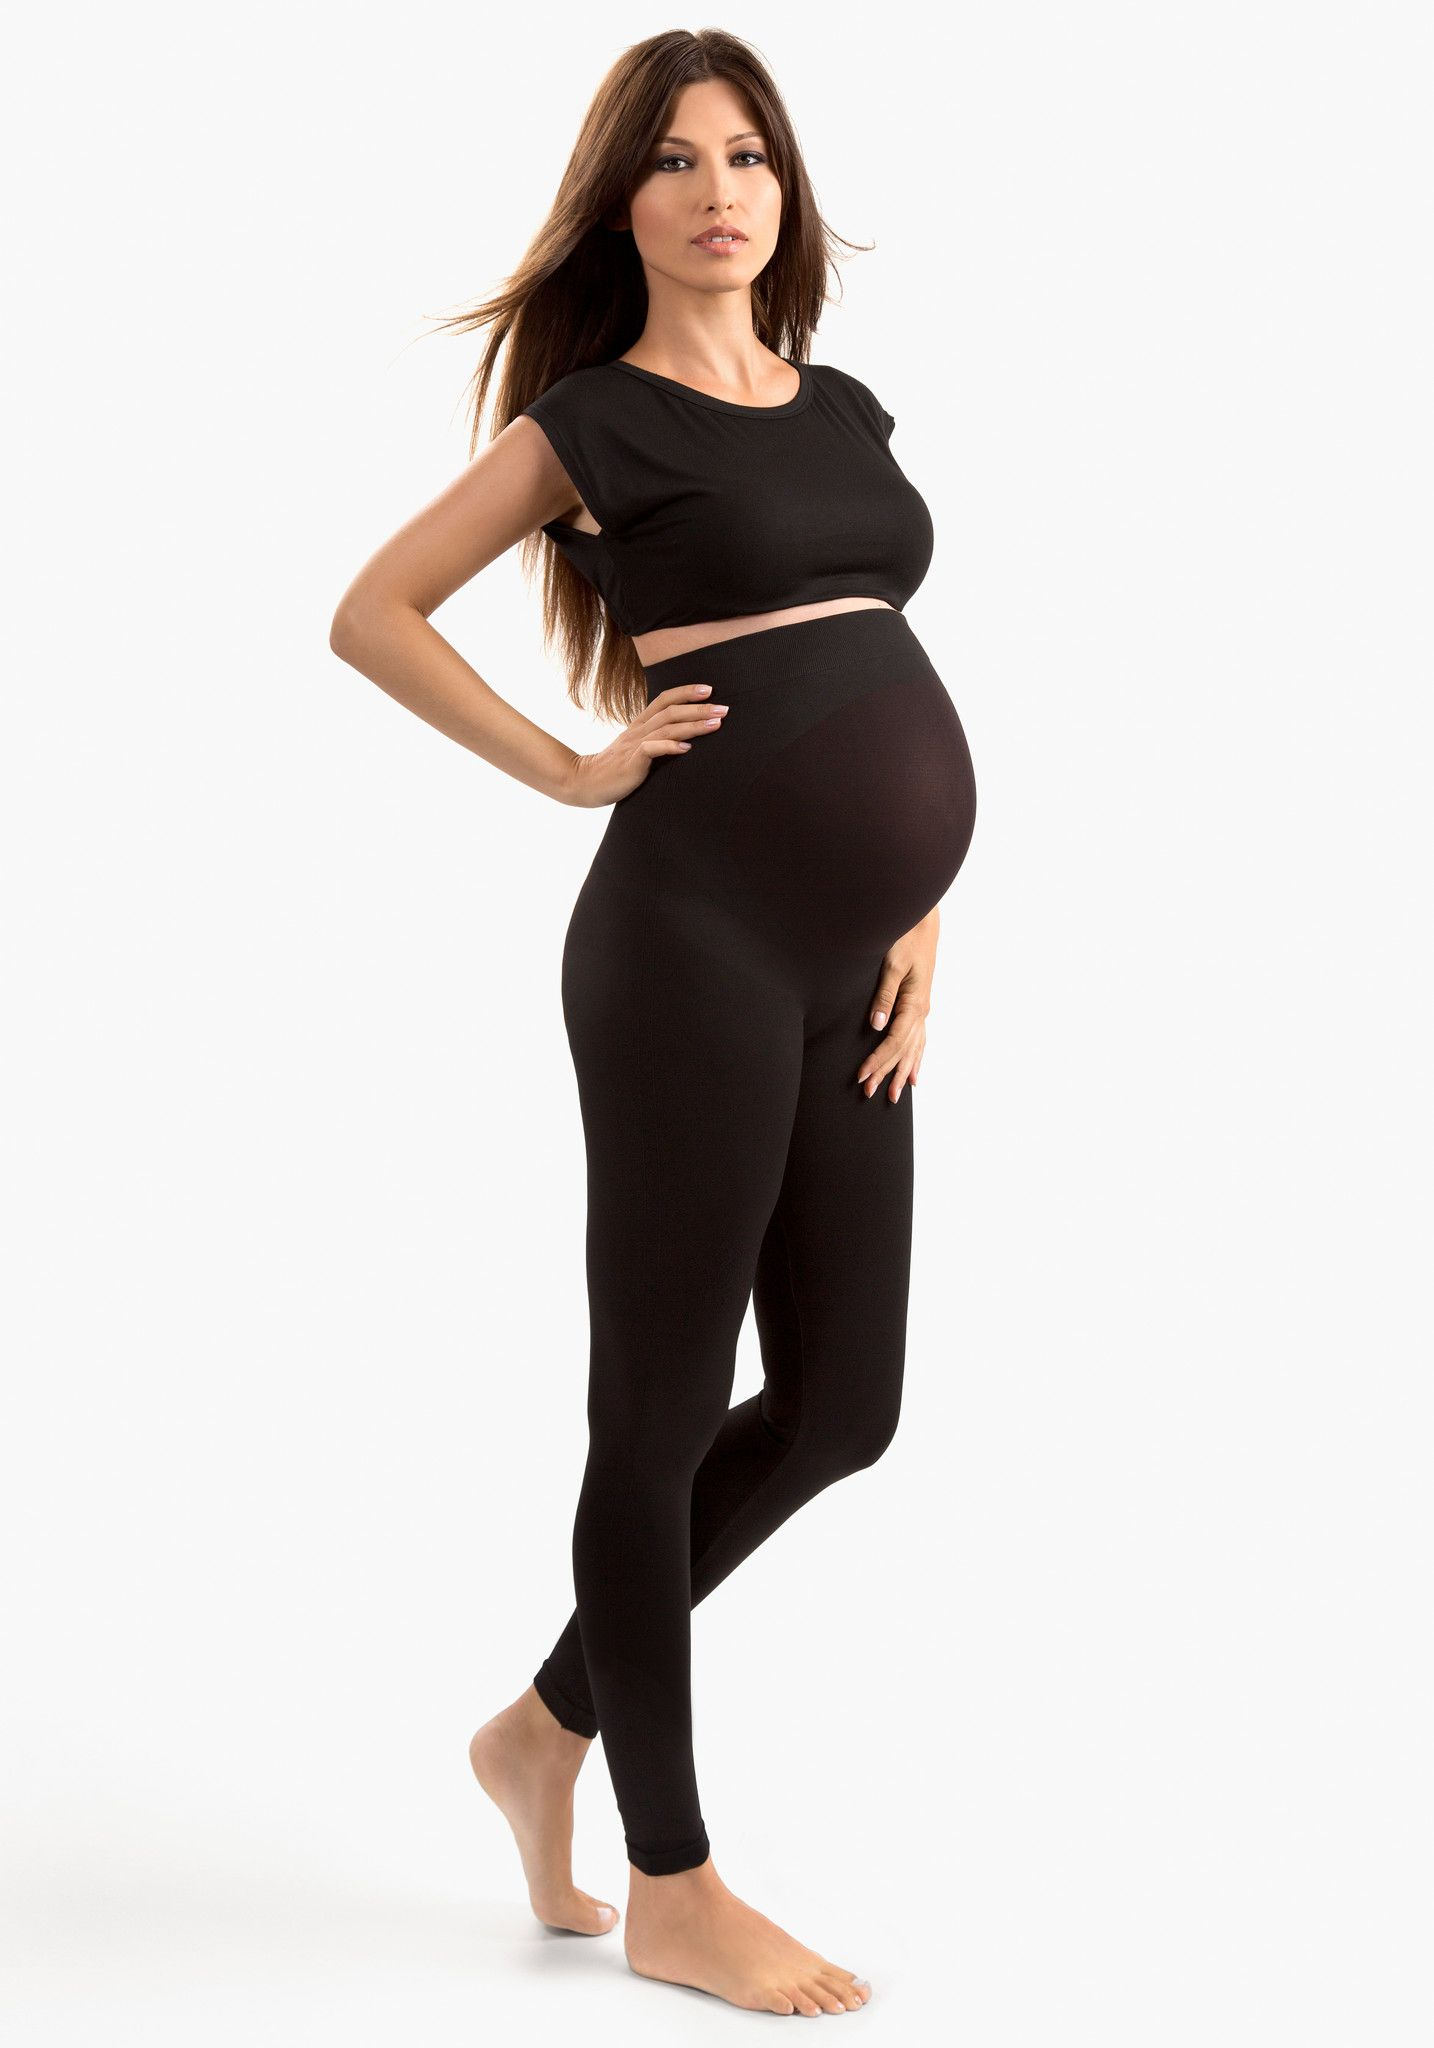 f3d68601cc5085 Maternity High Performance Belly Lift & Support Leggings - for next time?